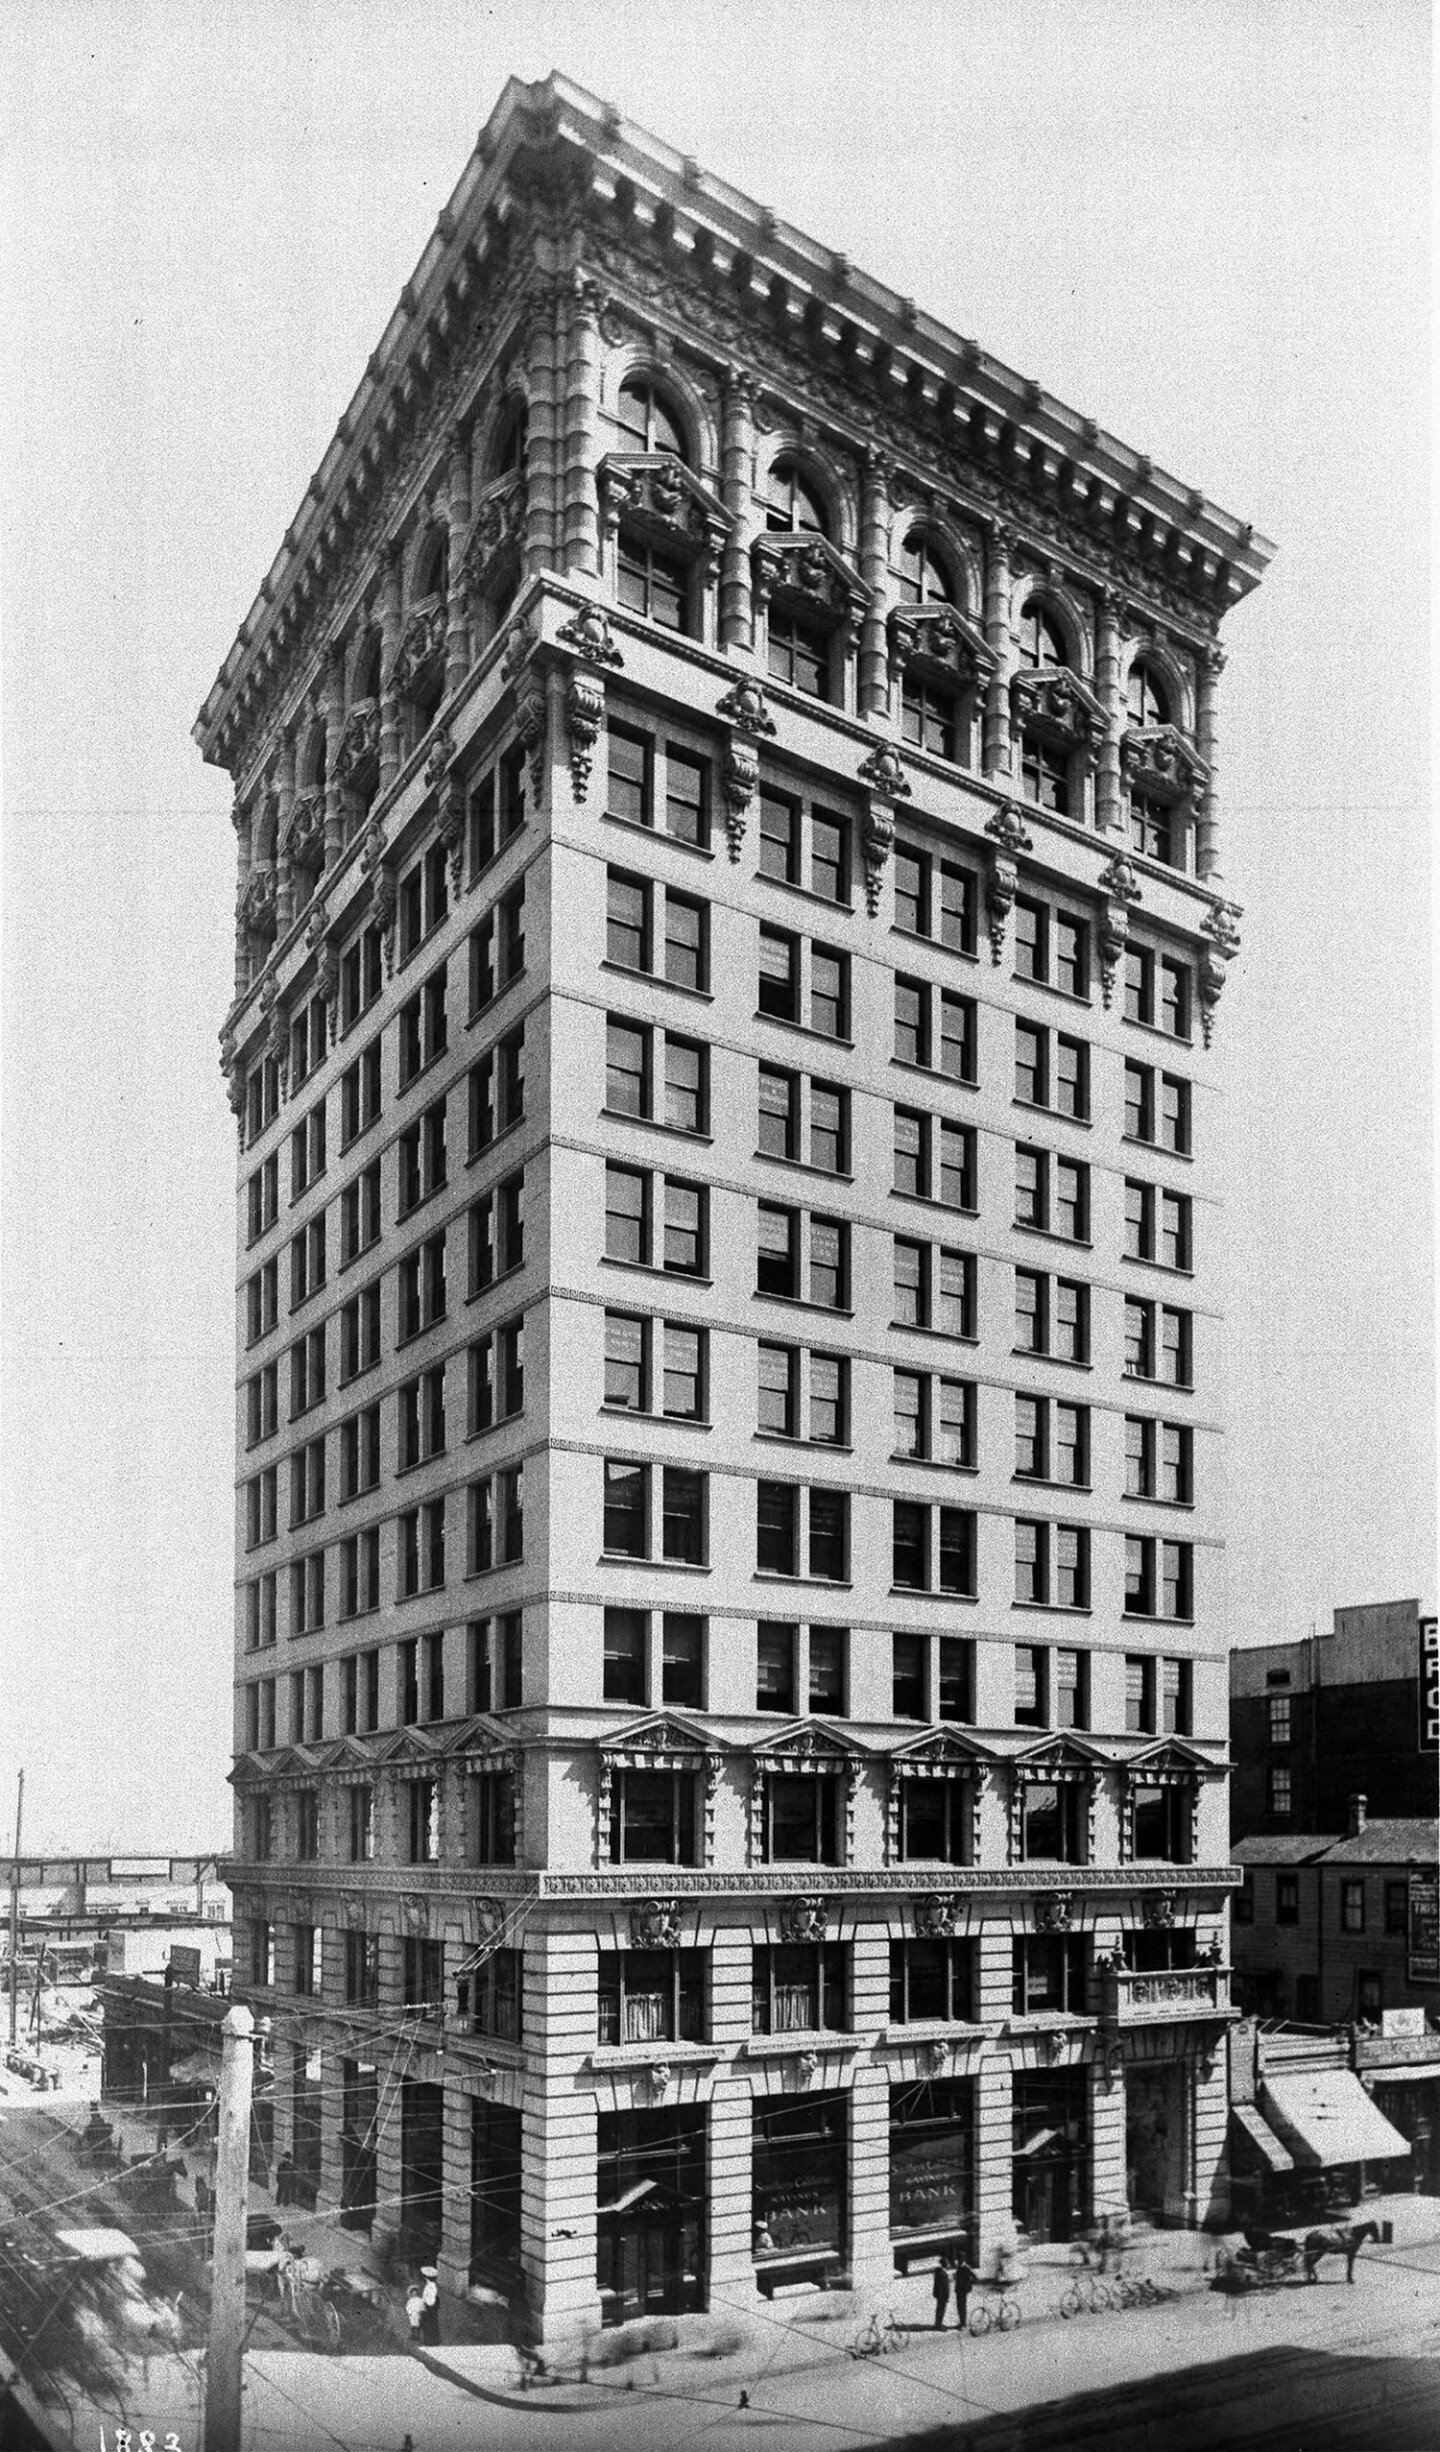 The Braly Block, shortly after its completion in 1904